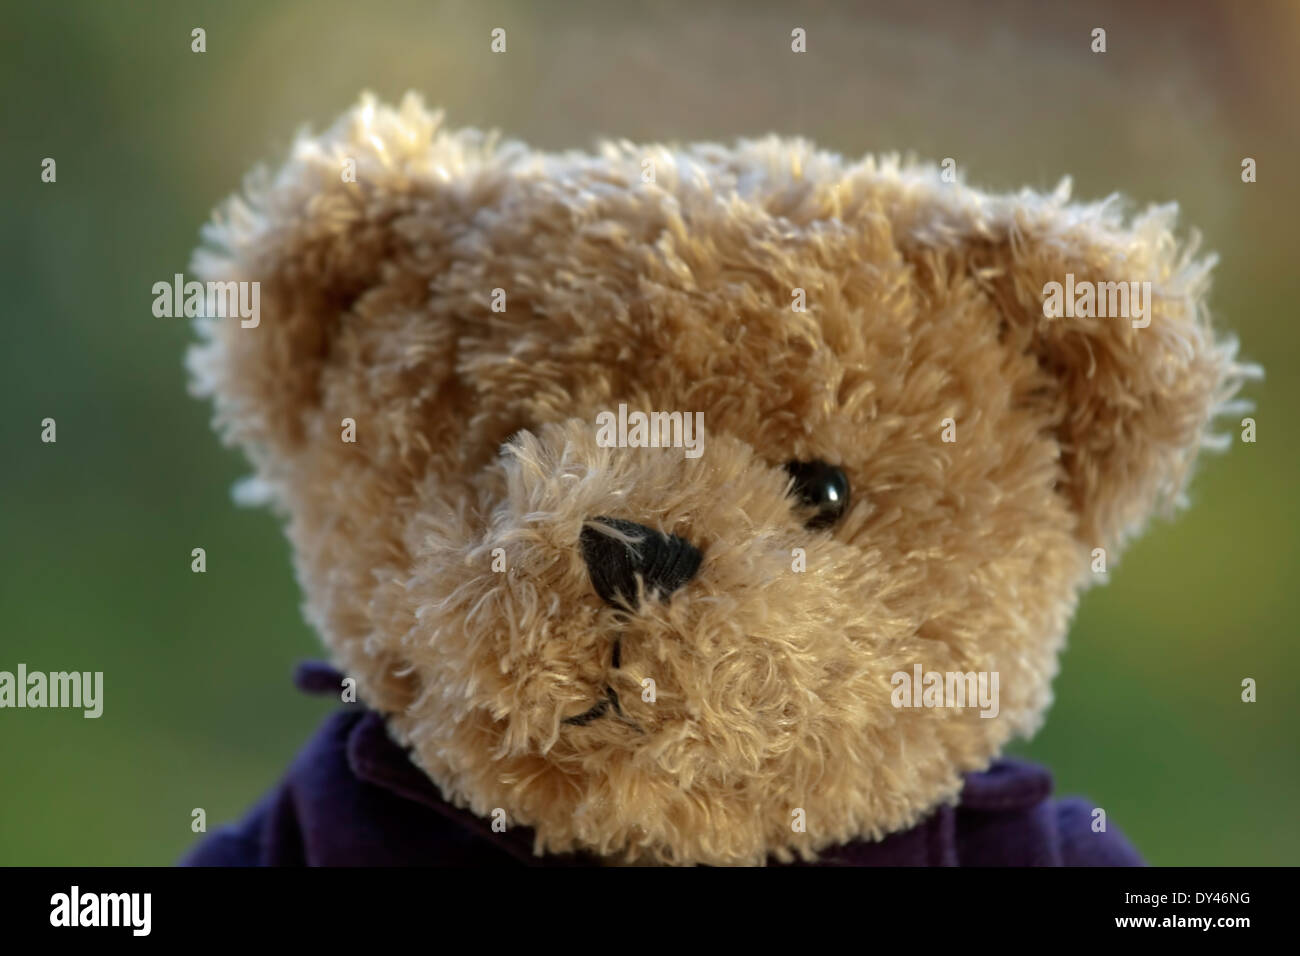 Portrait of a cuddly teddy bear against an unfocused background. - Stock Image